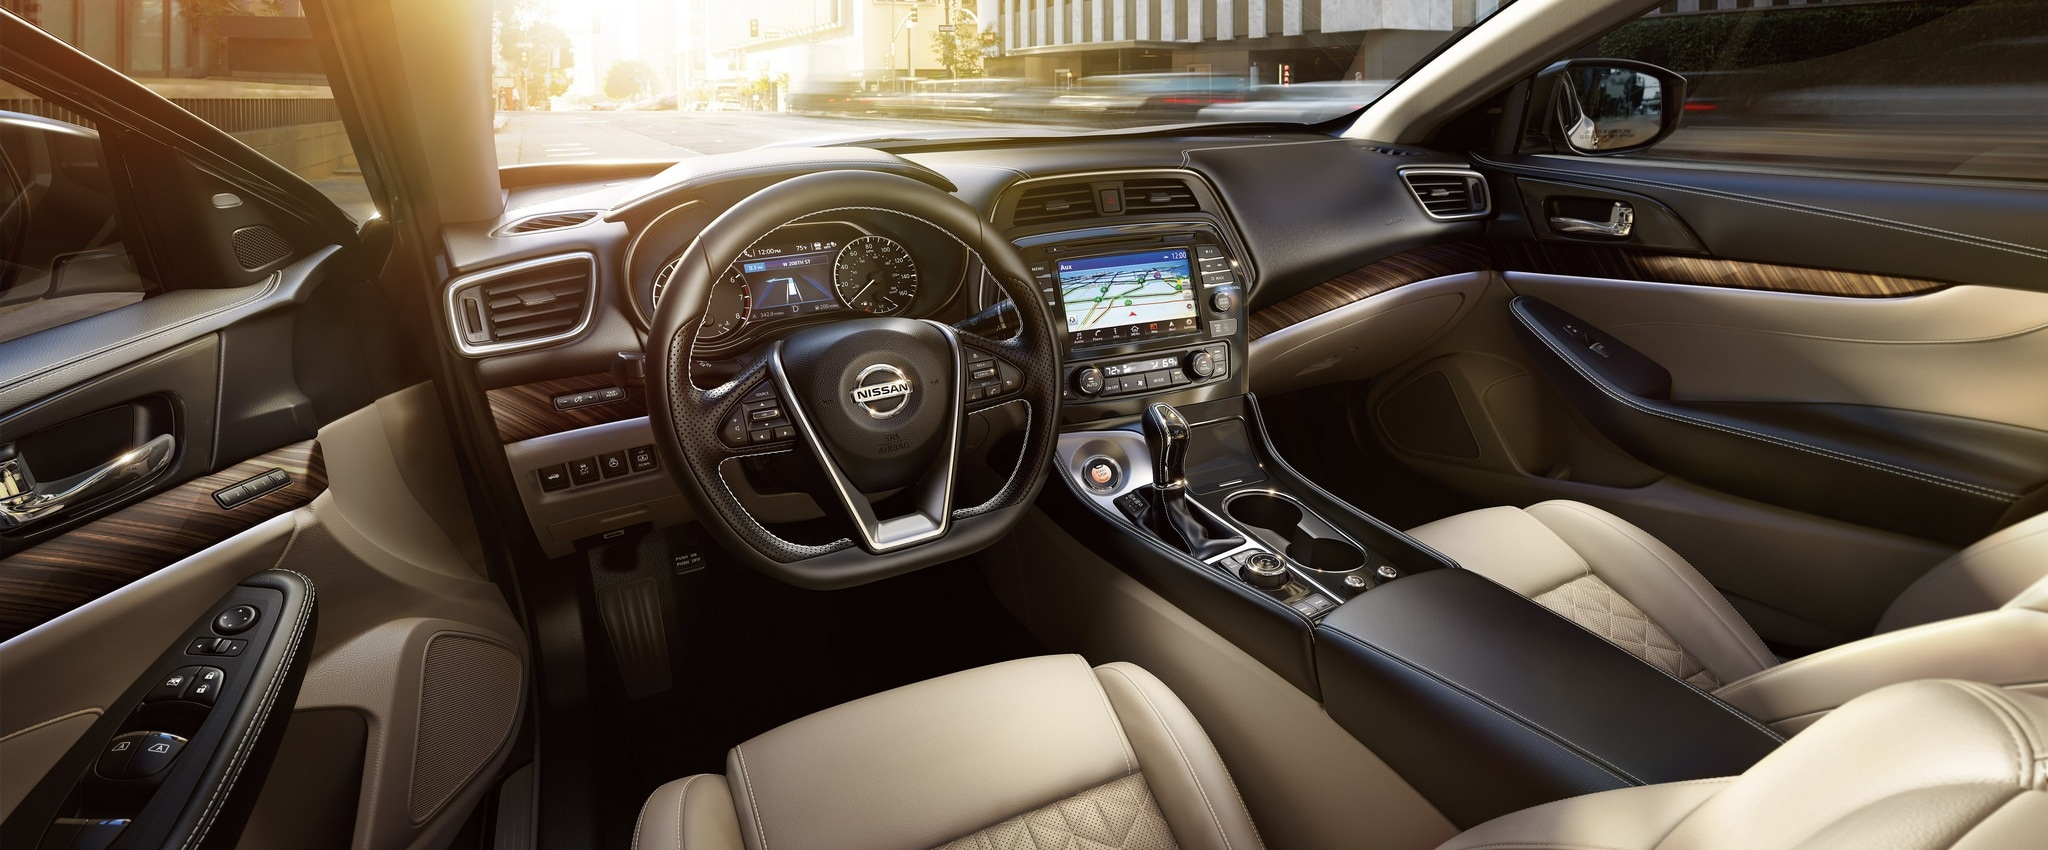 2016 Nissan Maxima Interior Lighting Package Best Accessories Home 2018